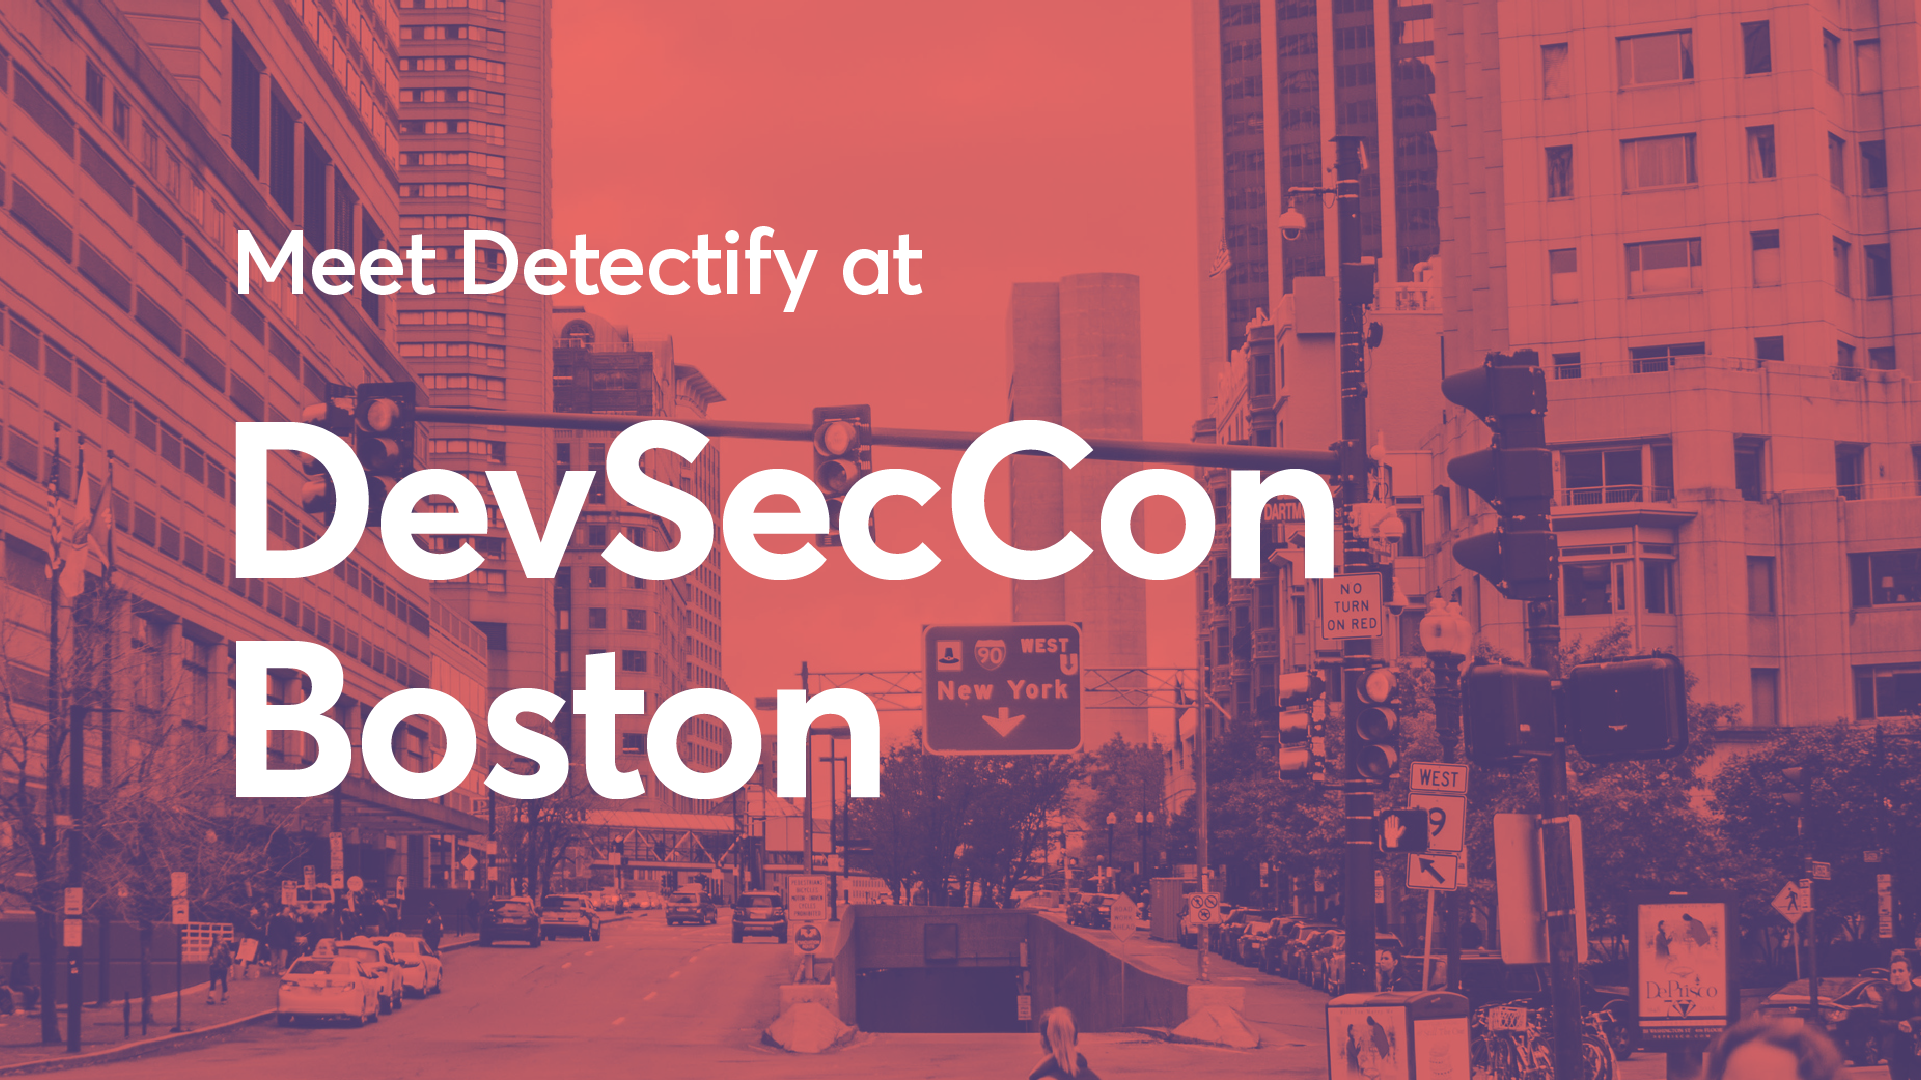 Meet Detectify at the DevSecCon cyber security conference in Boston